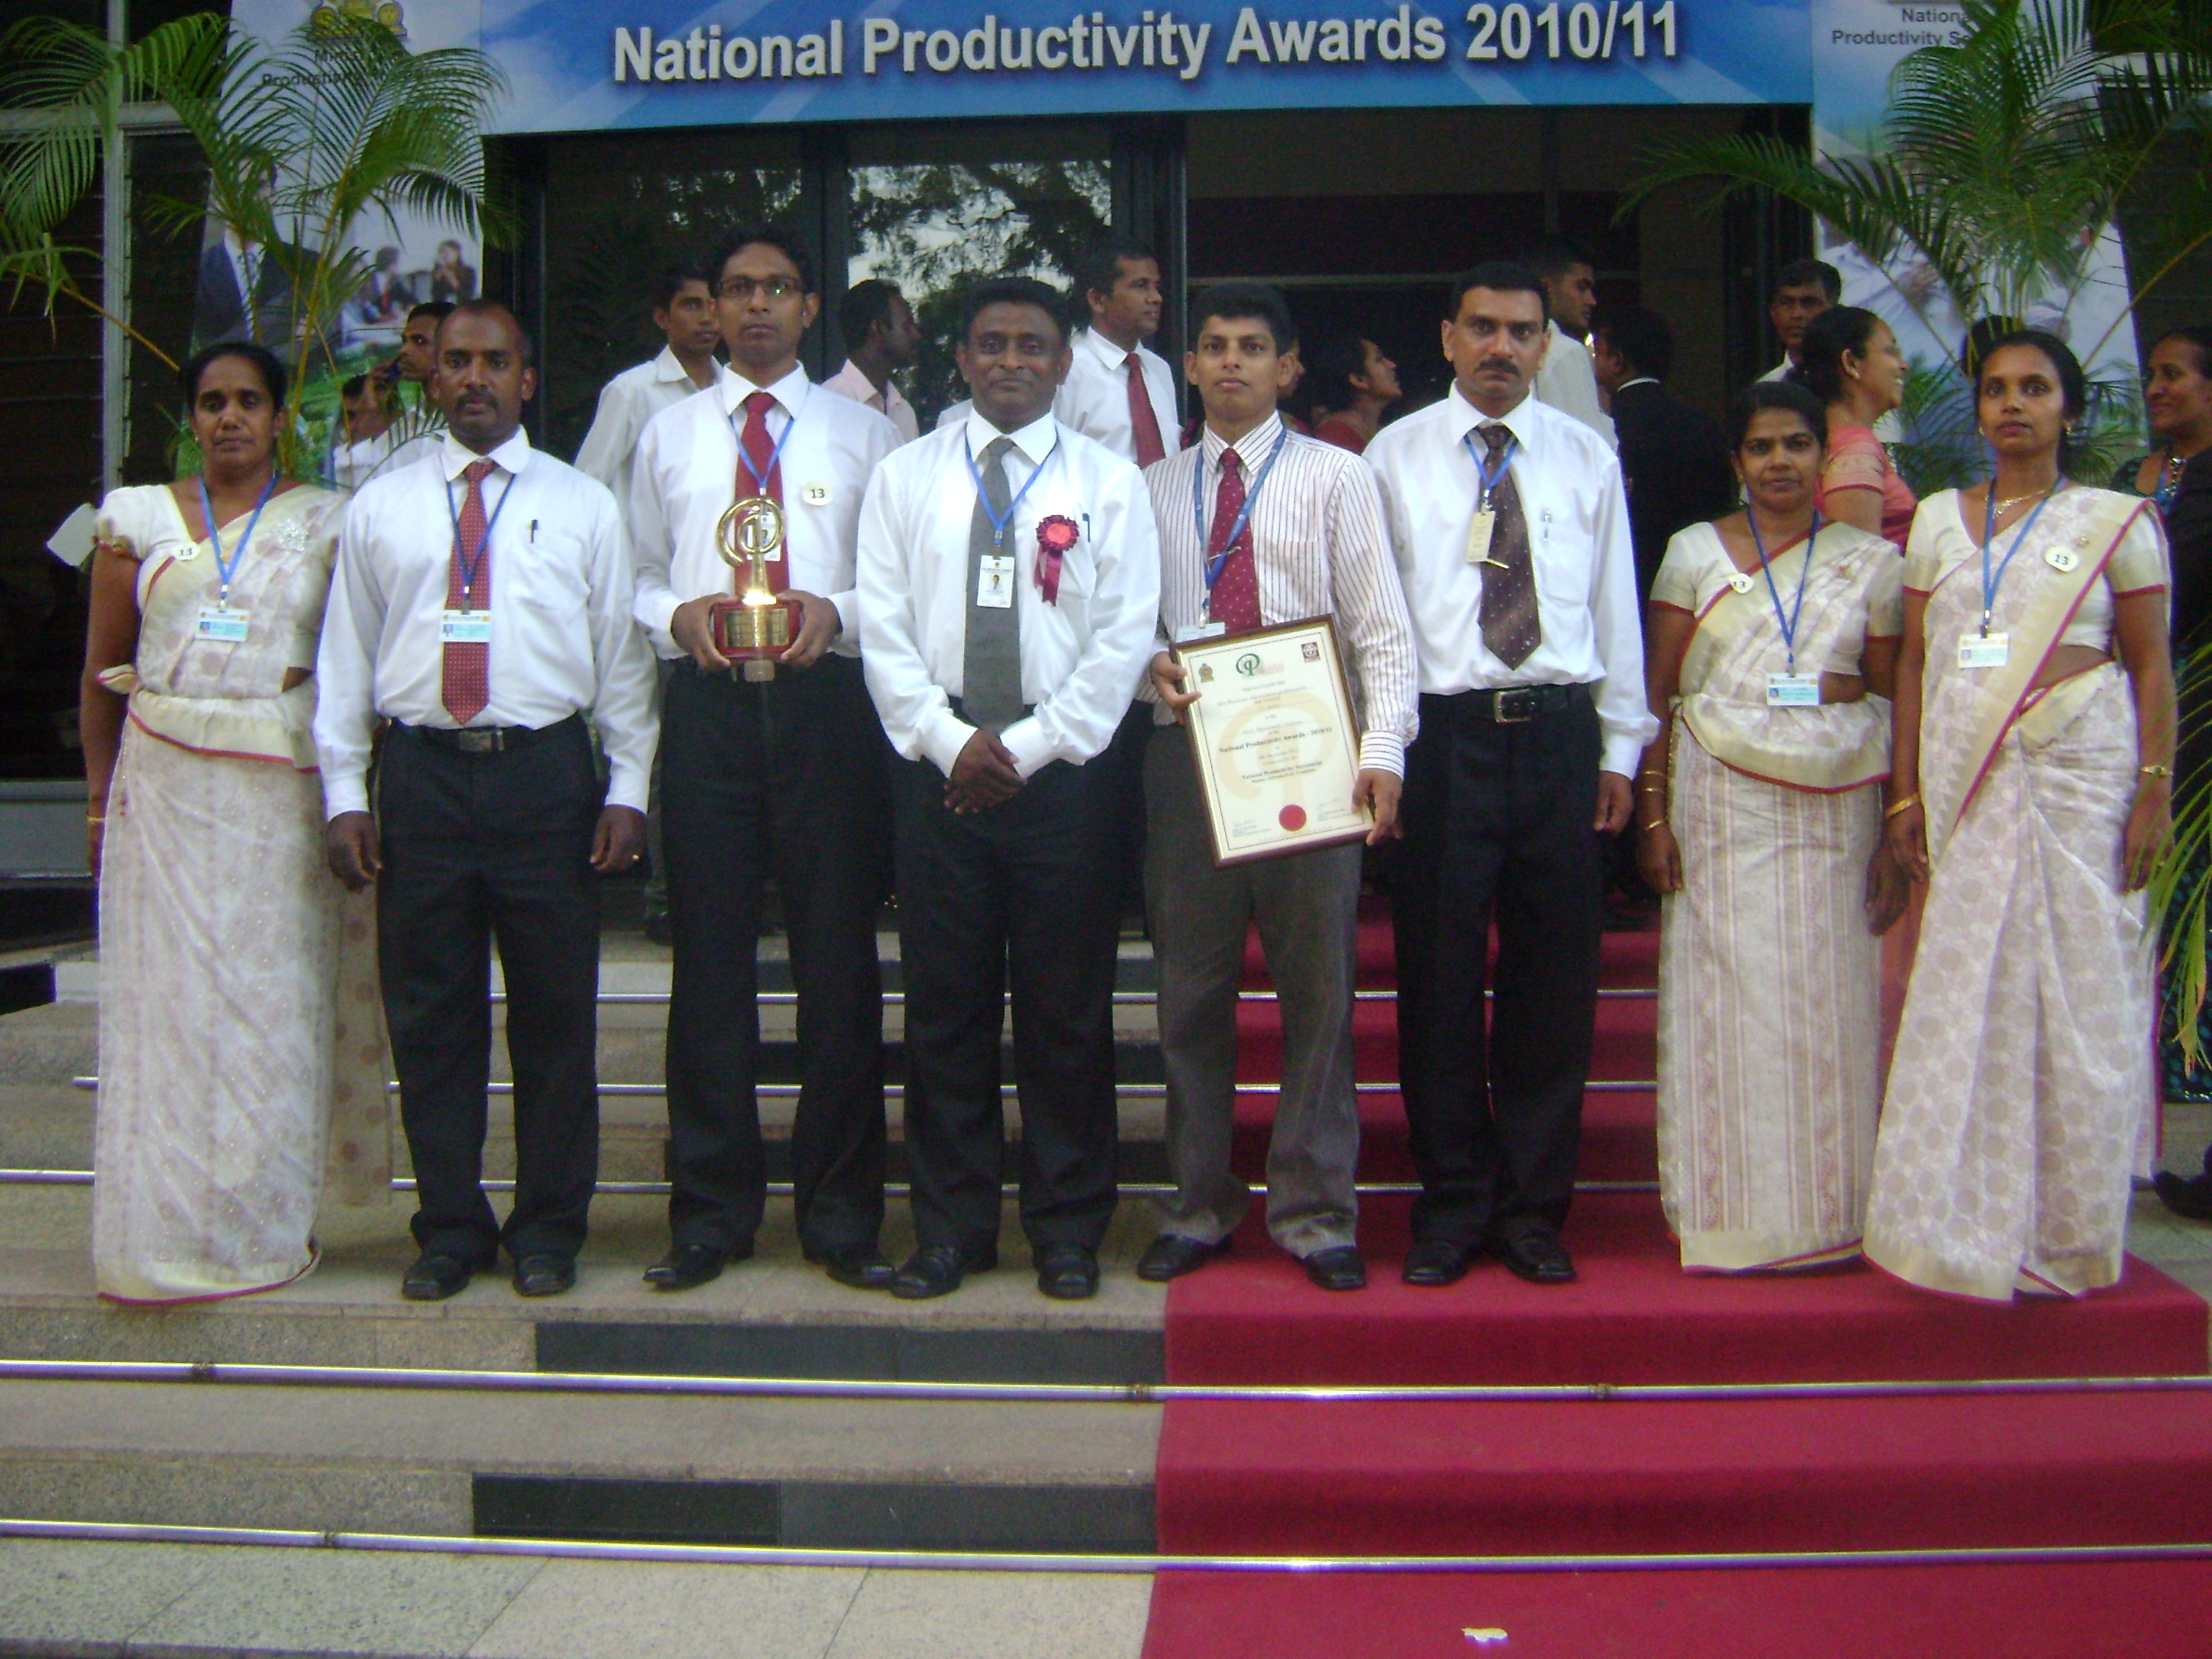 You are browsing images from the article: National Productivity Awards 2010/11